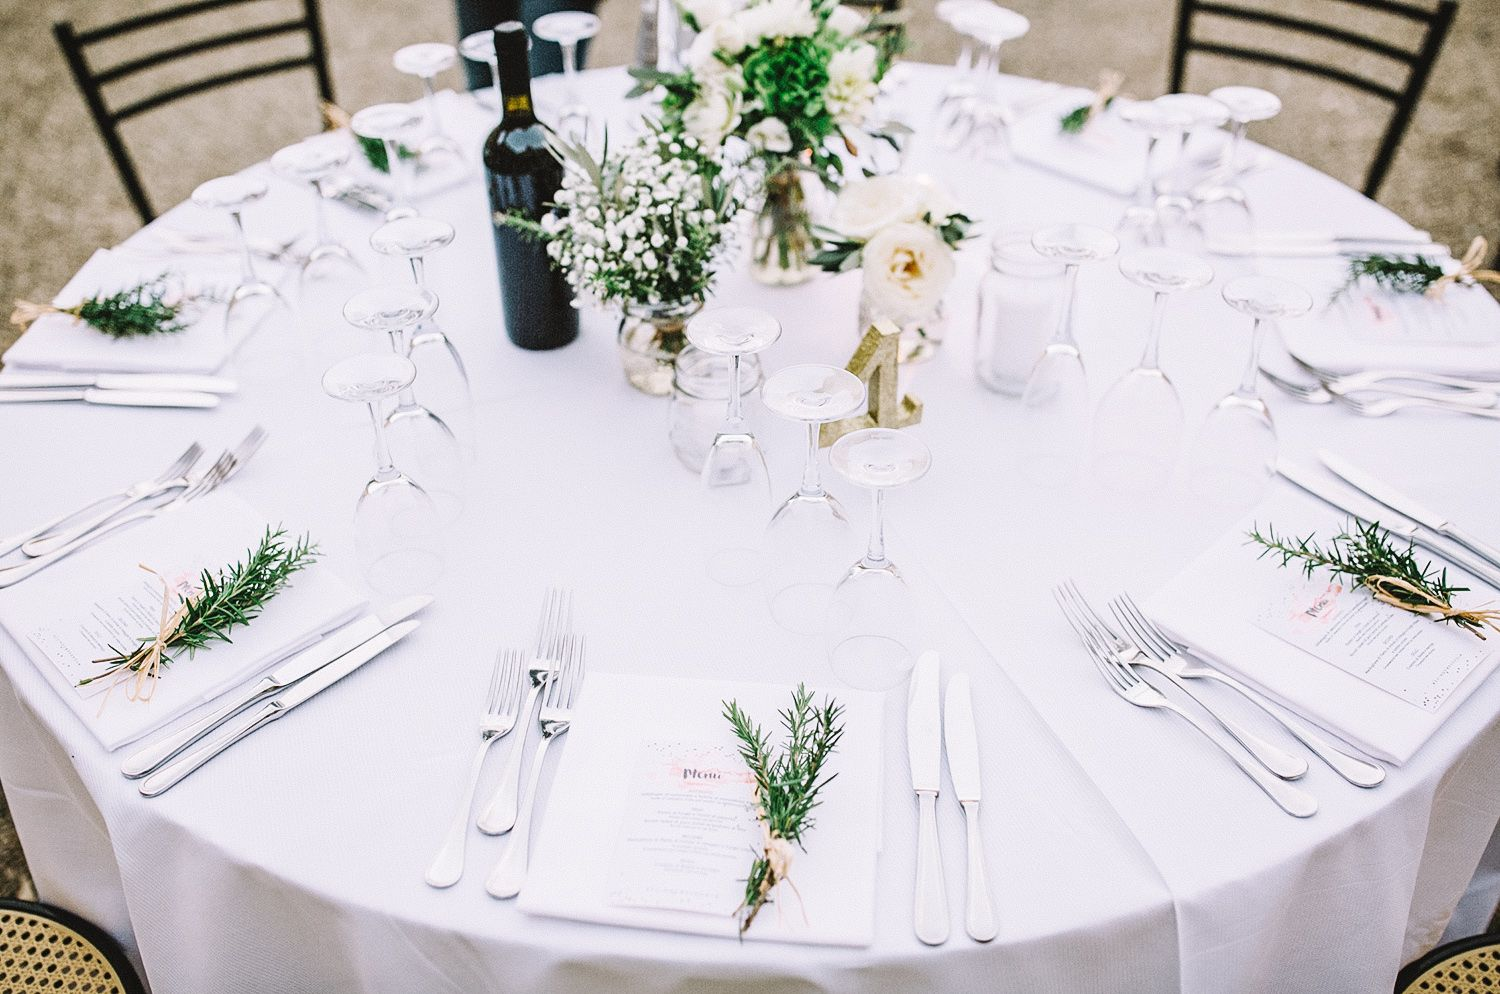 Wedding table decorations white flowers rosemary gold table numbers ...